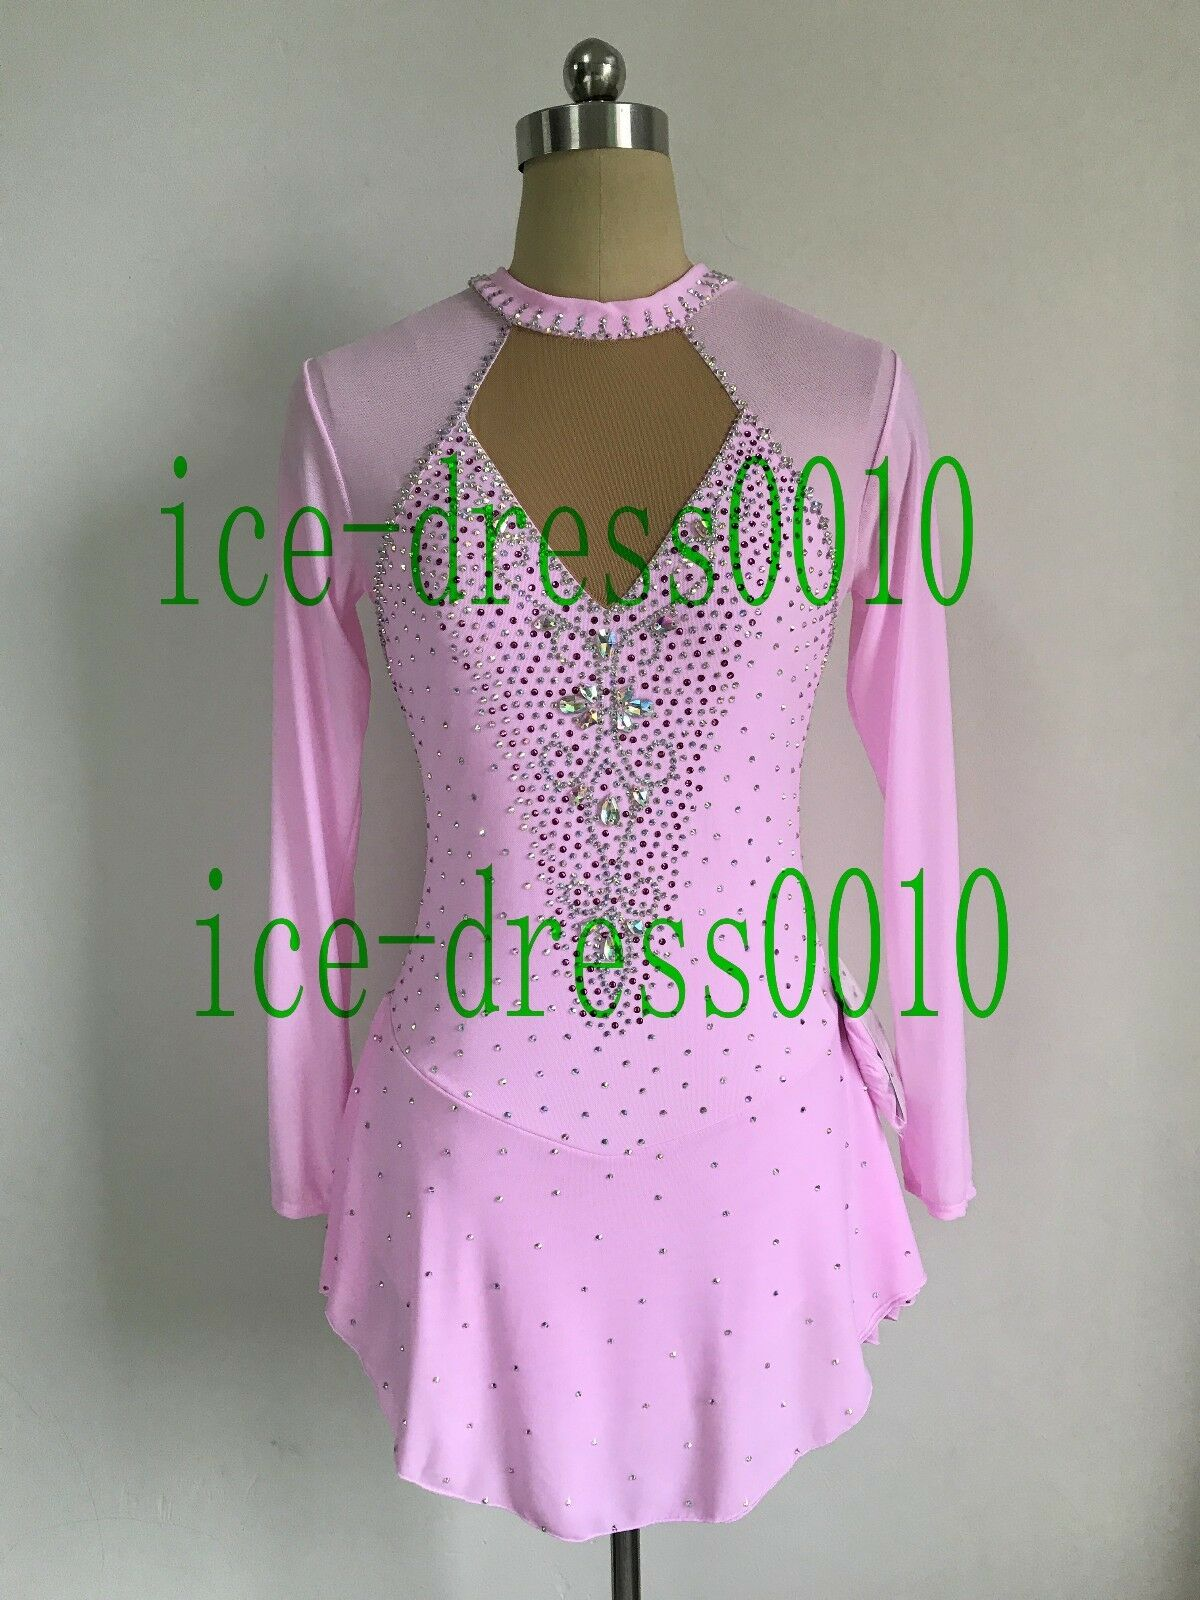 2018 new style Figure Skating Ice Skating Dress Gymnastics Costume 127-12